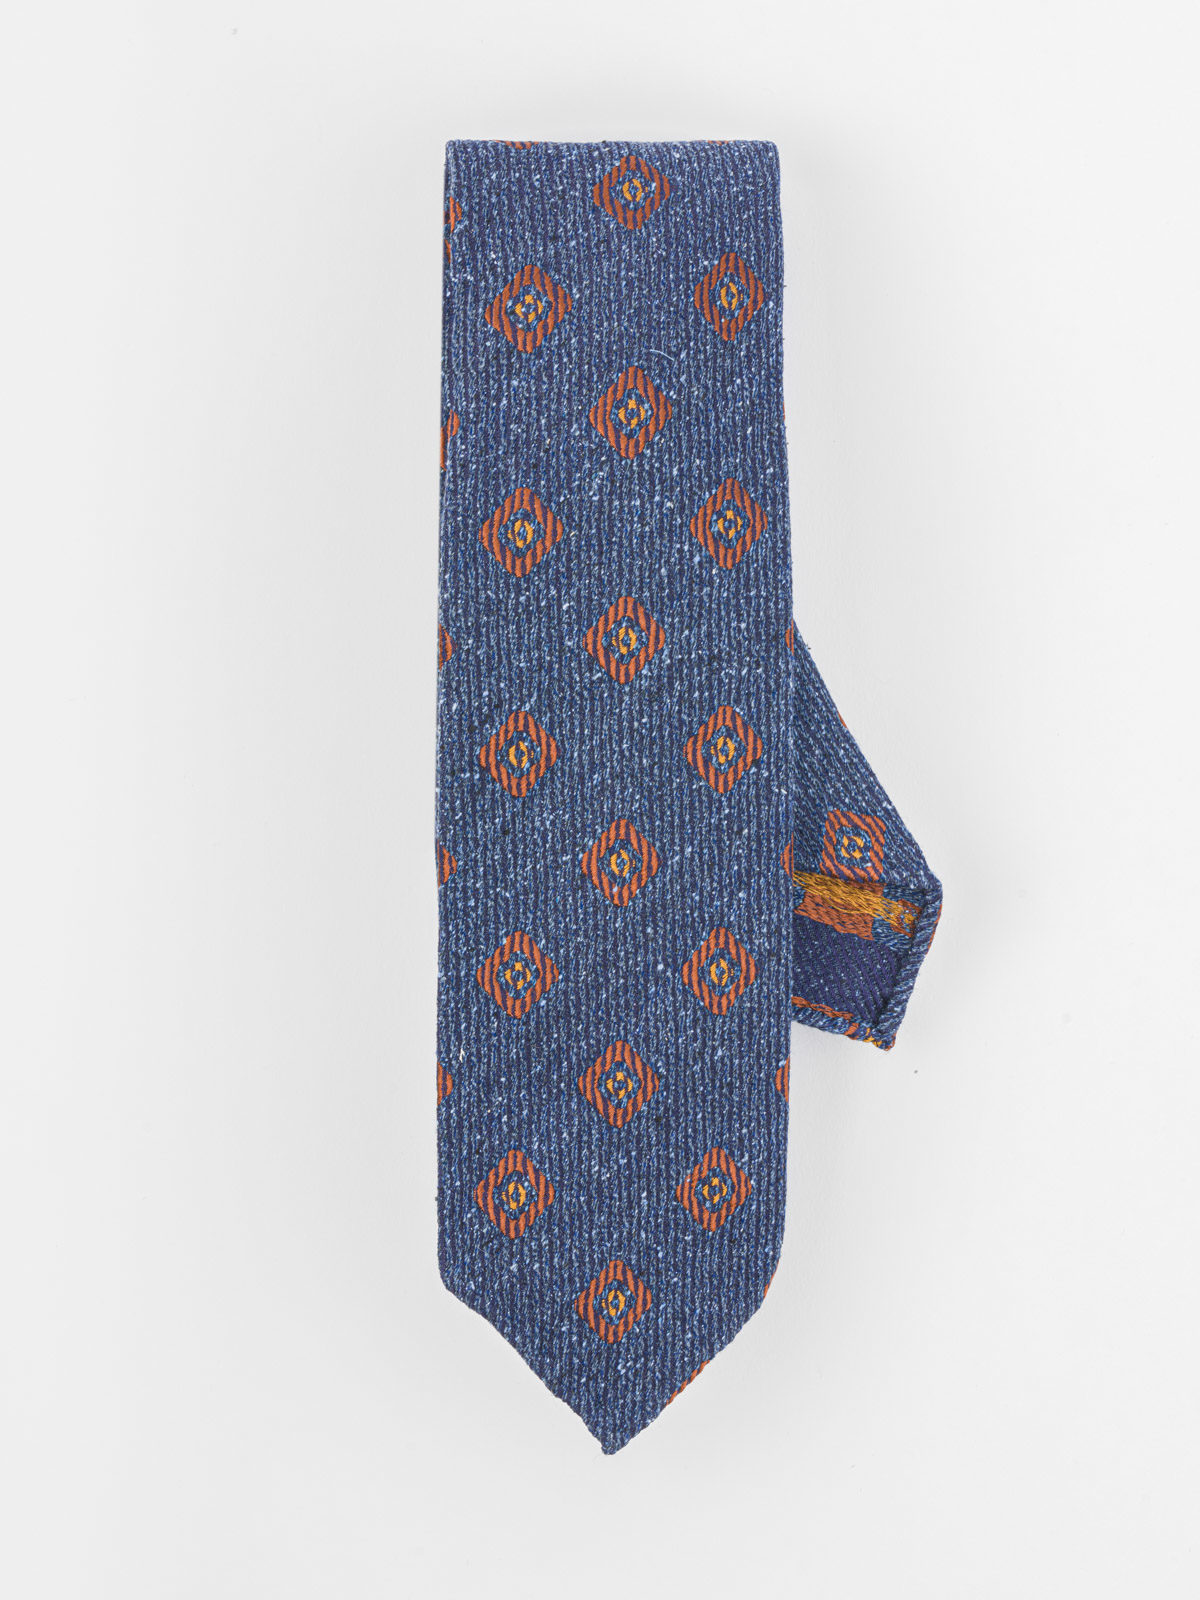 DRAKE'S BLUE AND OCHRE TIE